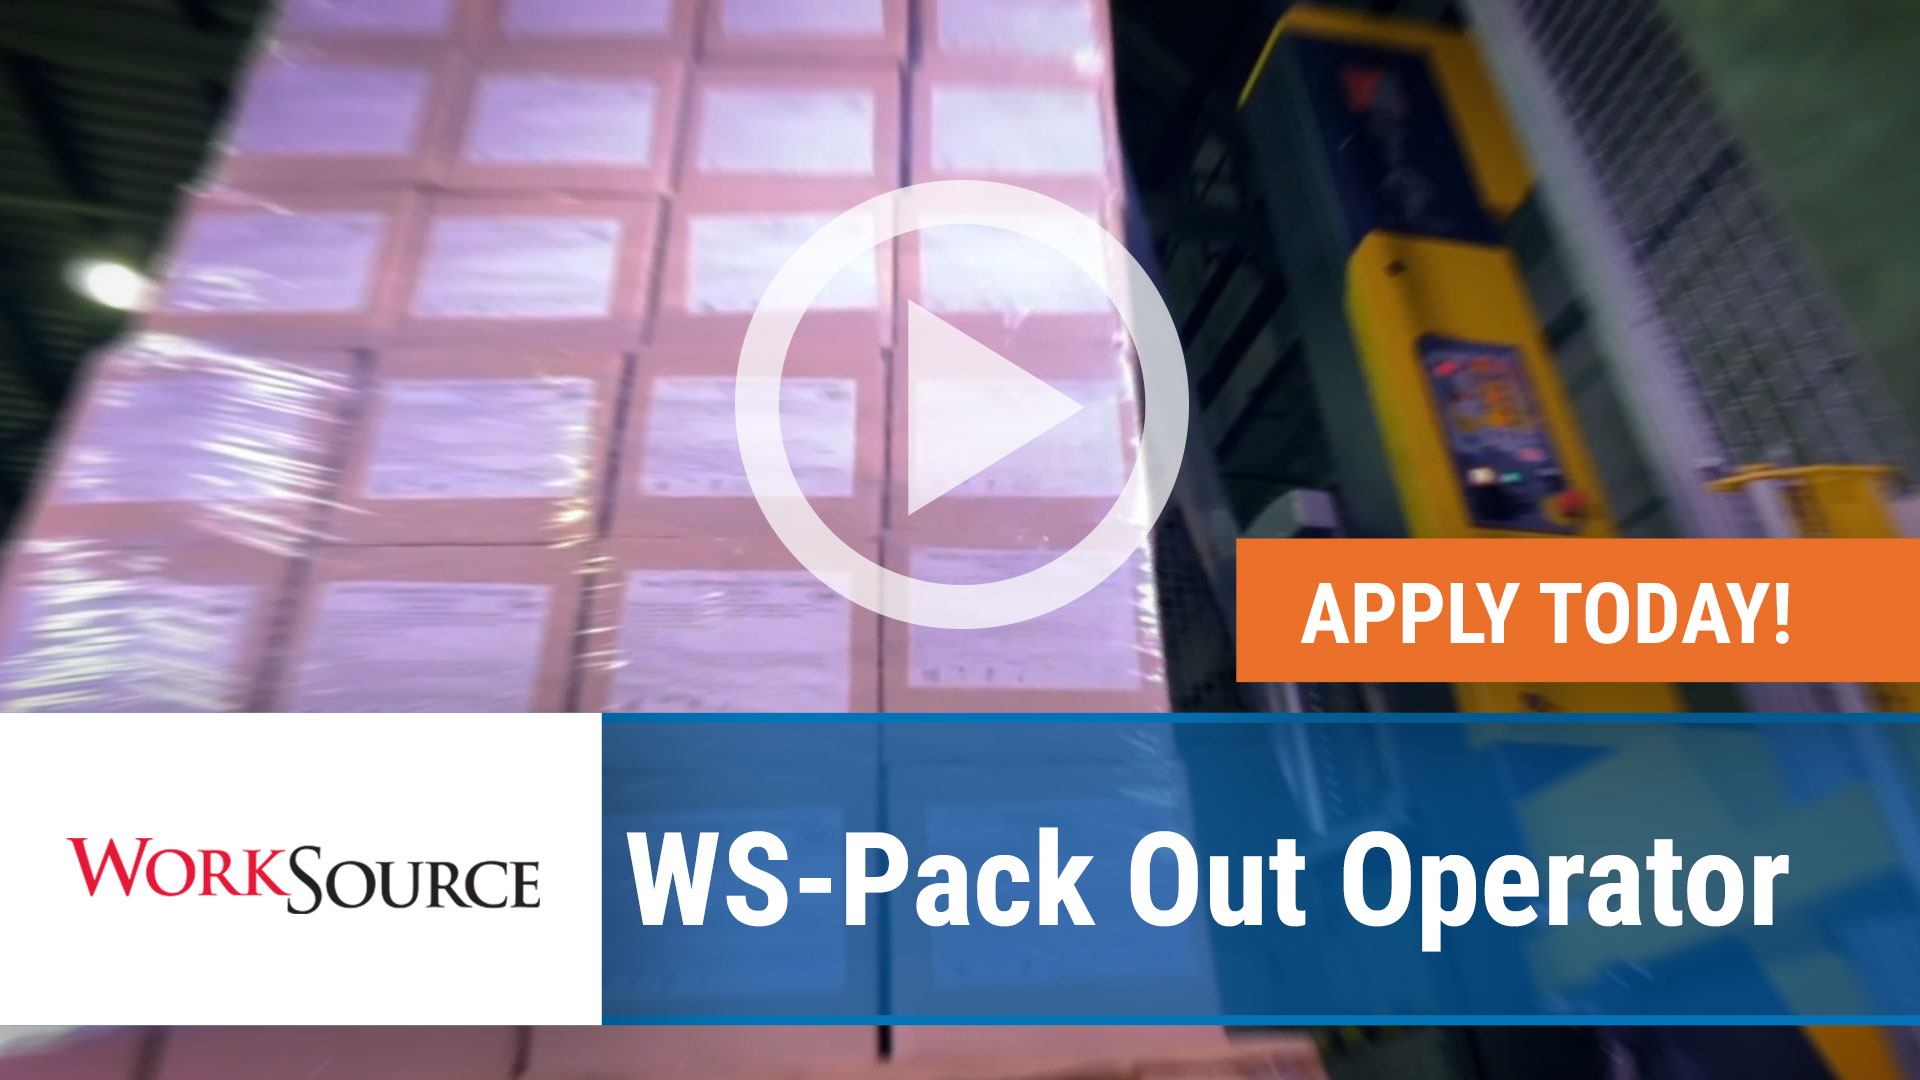 Watch our careers video for available job opening WS Pack Out Operator in Siloam Springs, Arkansas